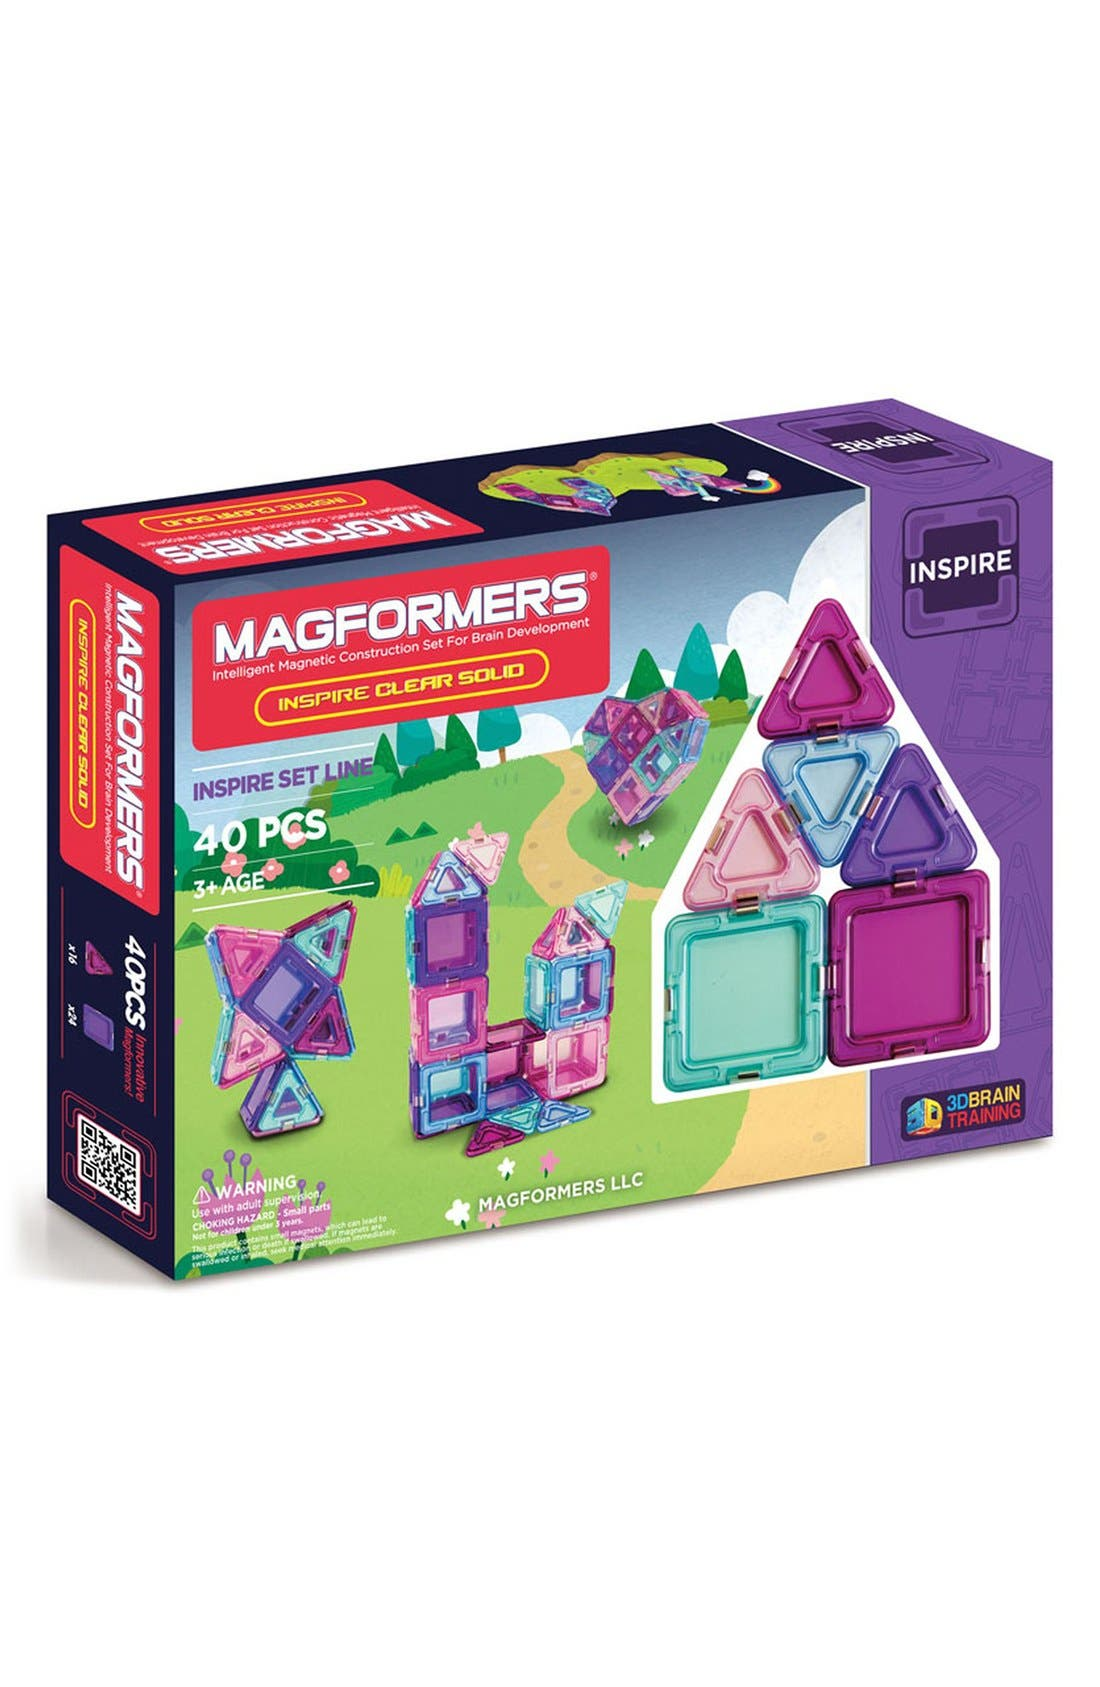 Magformers 'Inspire - Solids' Clear Magnetic 3D Construction Set